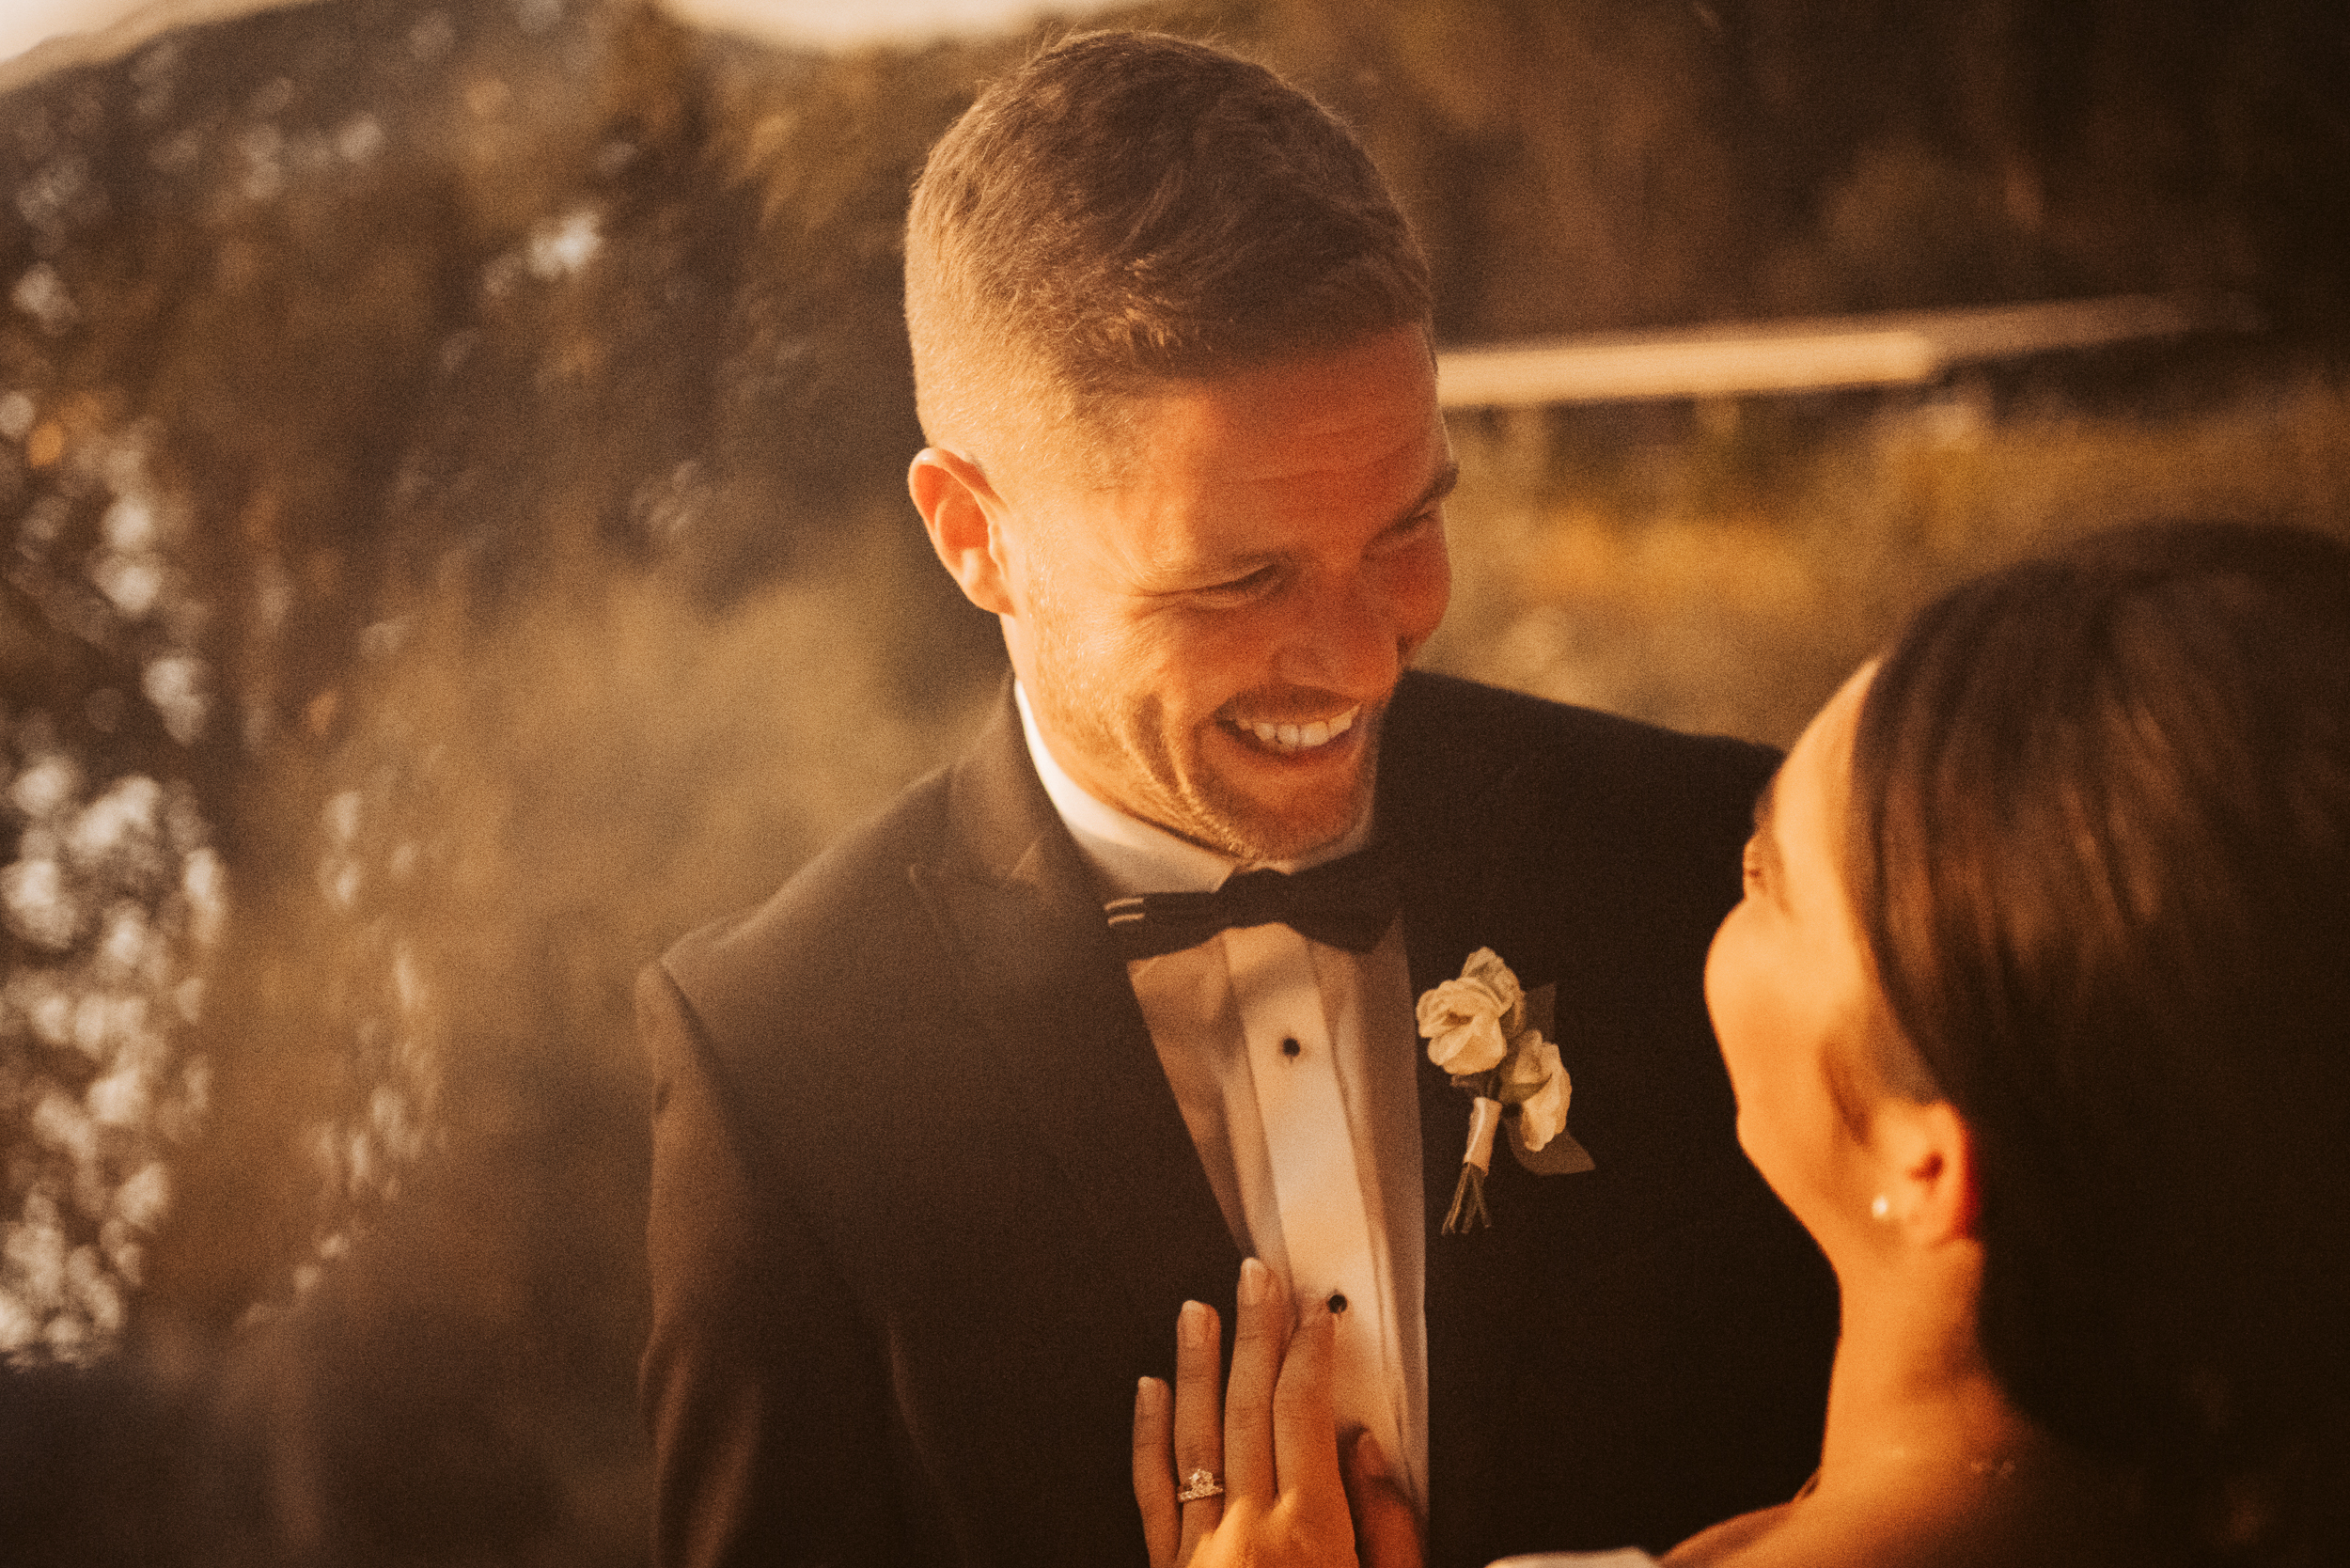 groom smiling in Italy